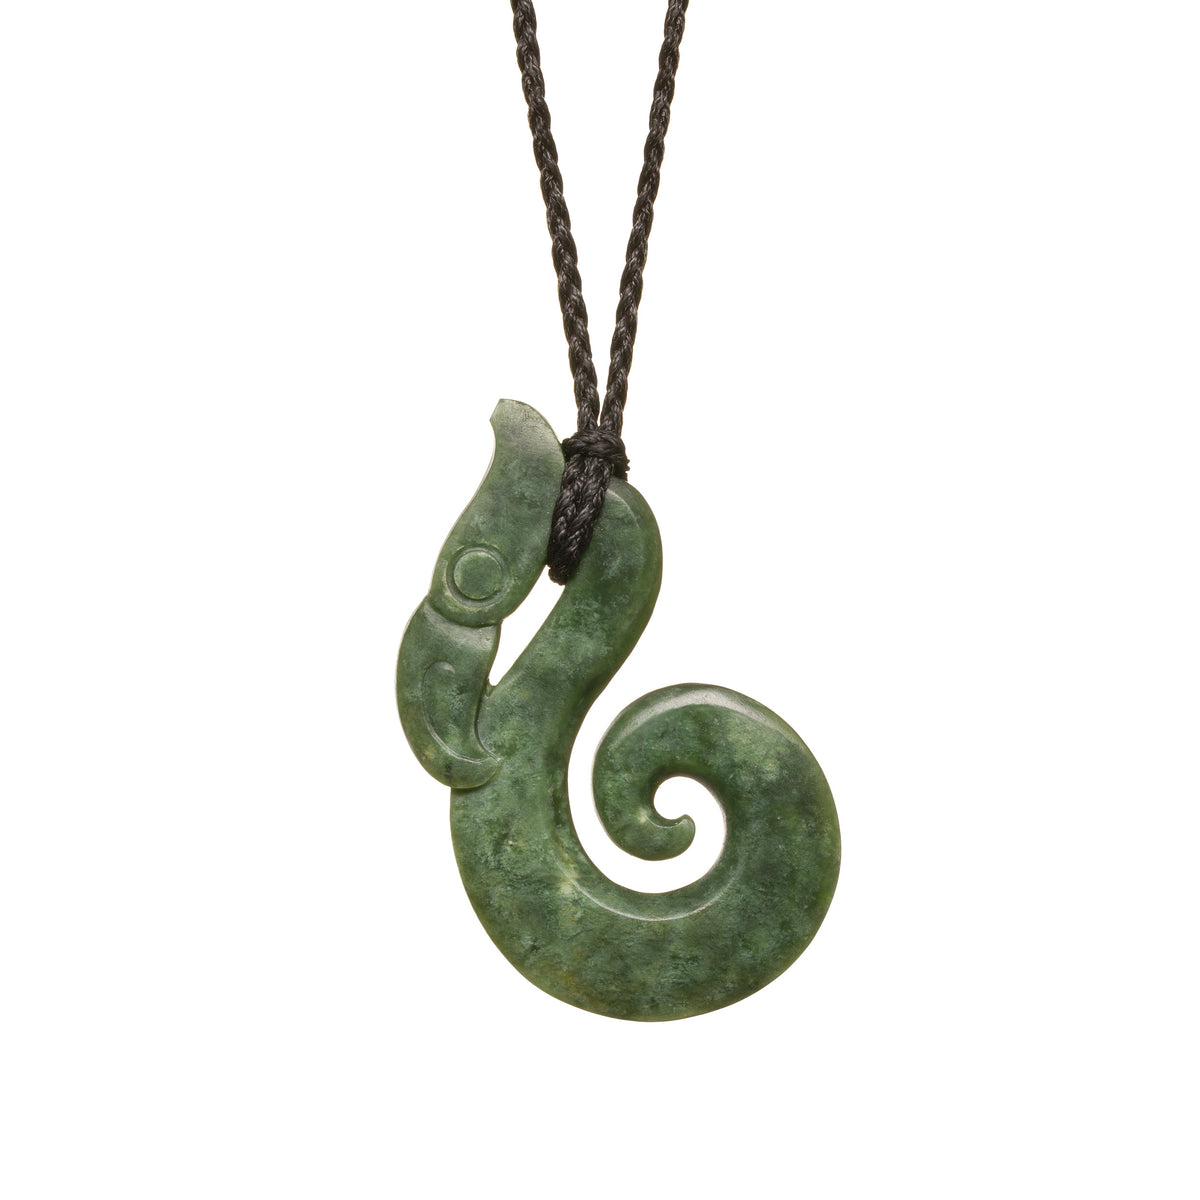 New Zealand Greenstone Manaia Hook Necklace